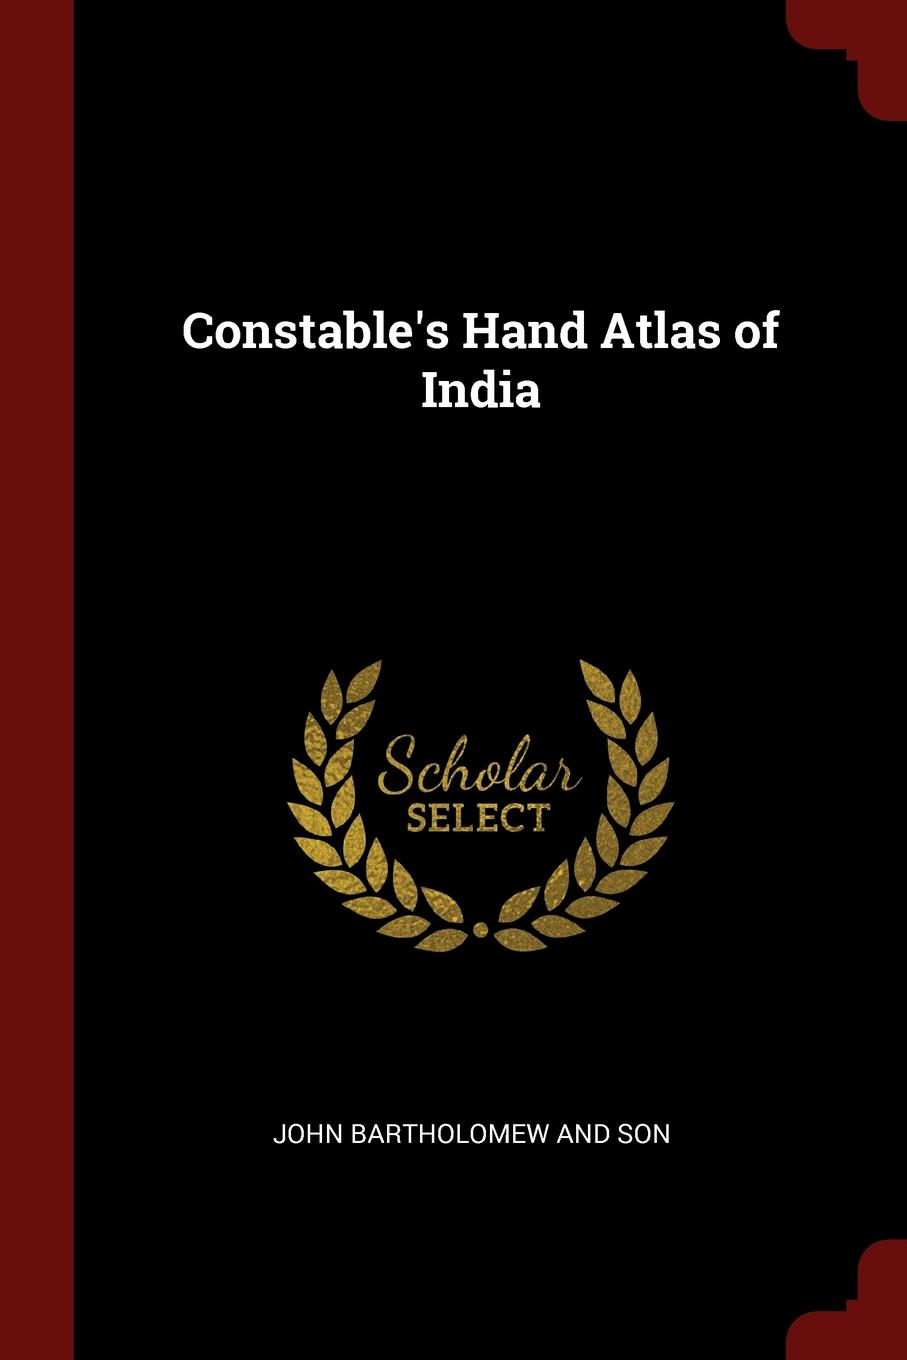 John Bartholomew And Son Constable.s Hand Atlas of India john bartholomew and son constable s hand atlas of india